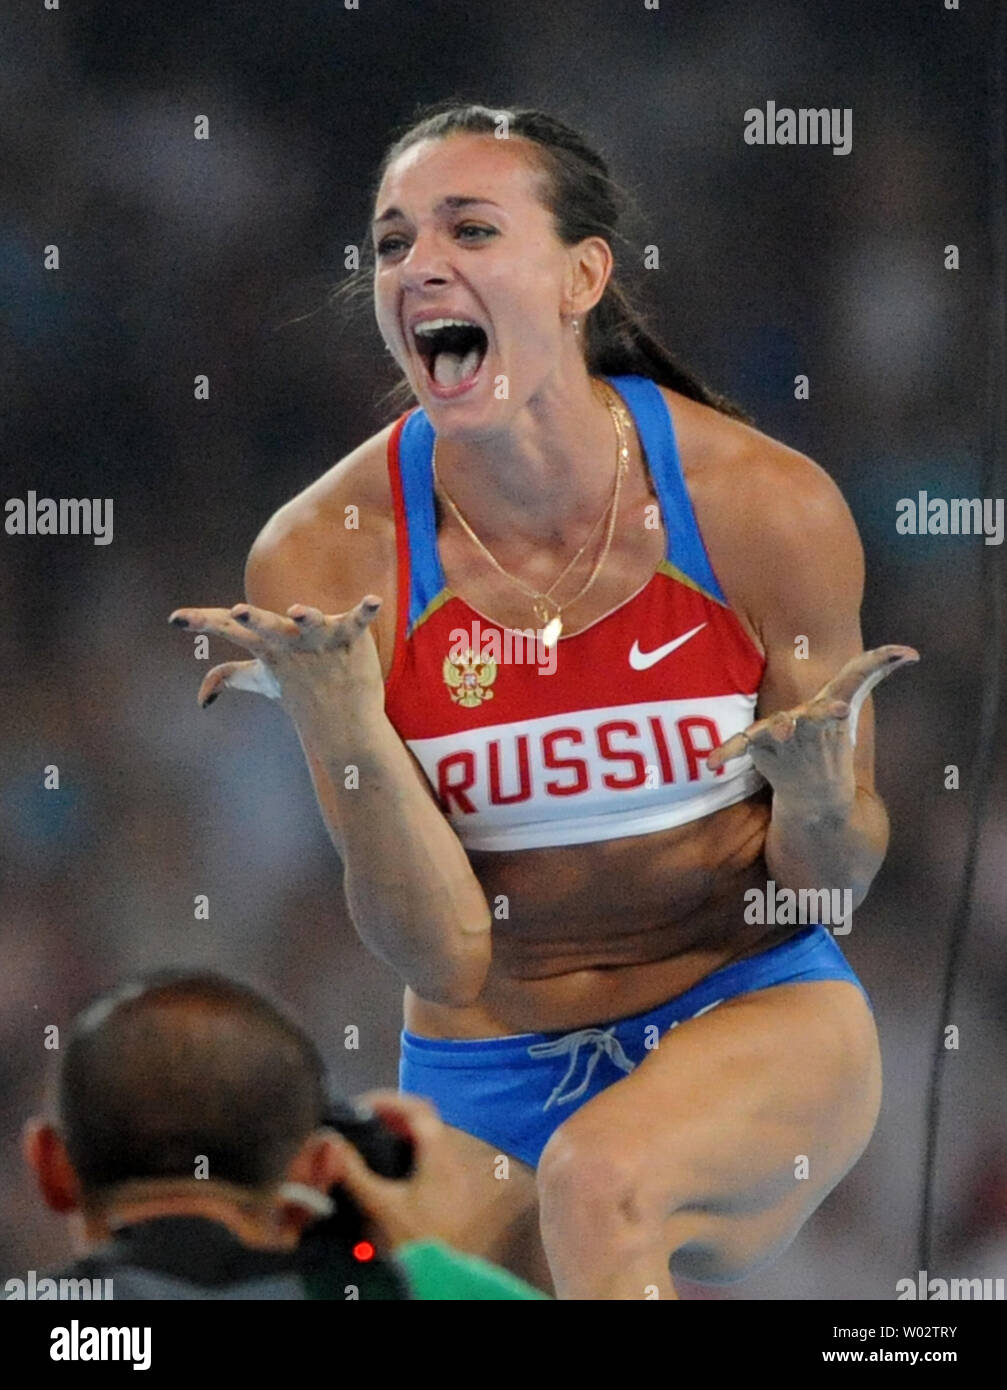 nudes Hot Yelena Valbe 7 Olympic medals (56 foto) Is a cute, 2019, see through